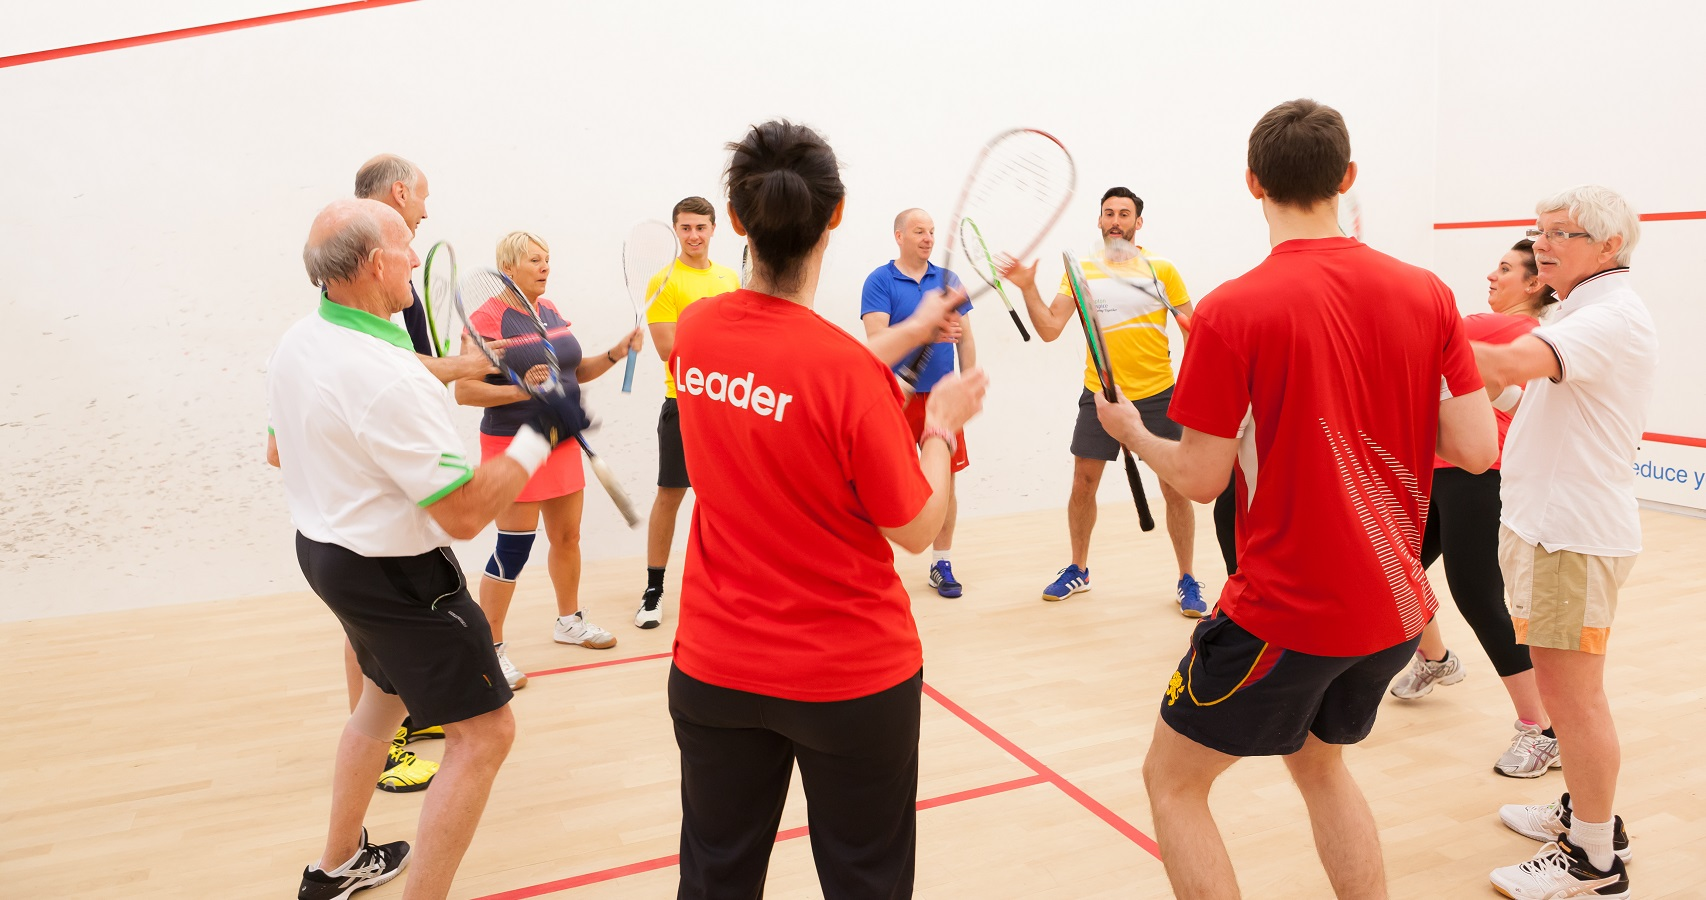 Group of squash players on court together